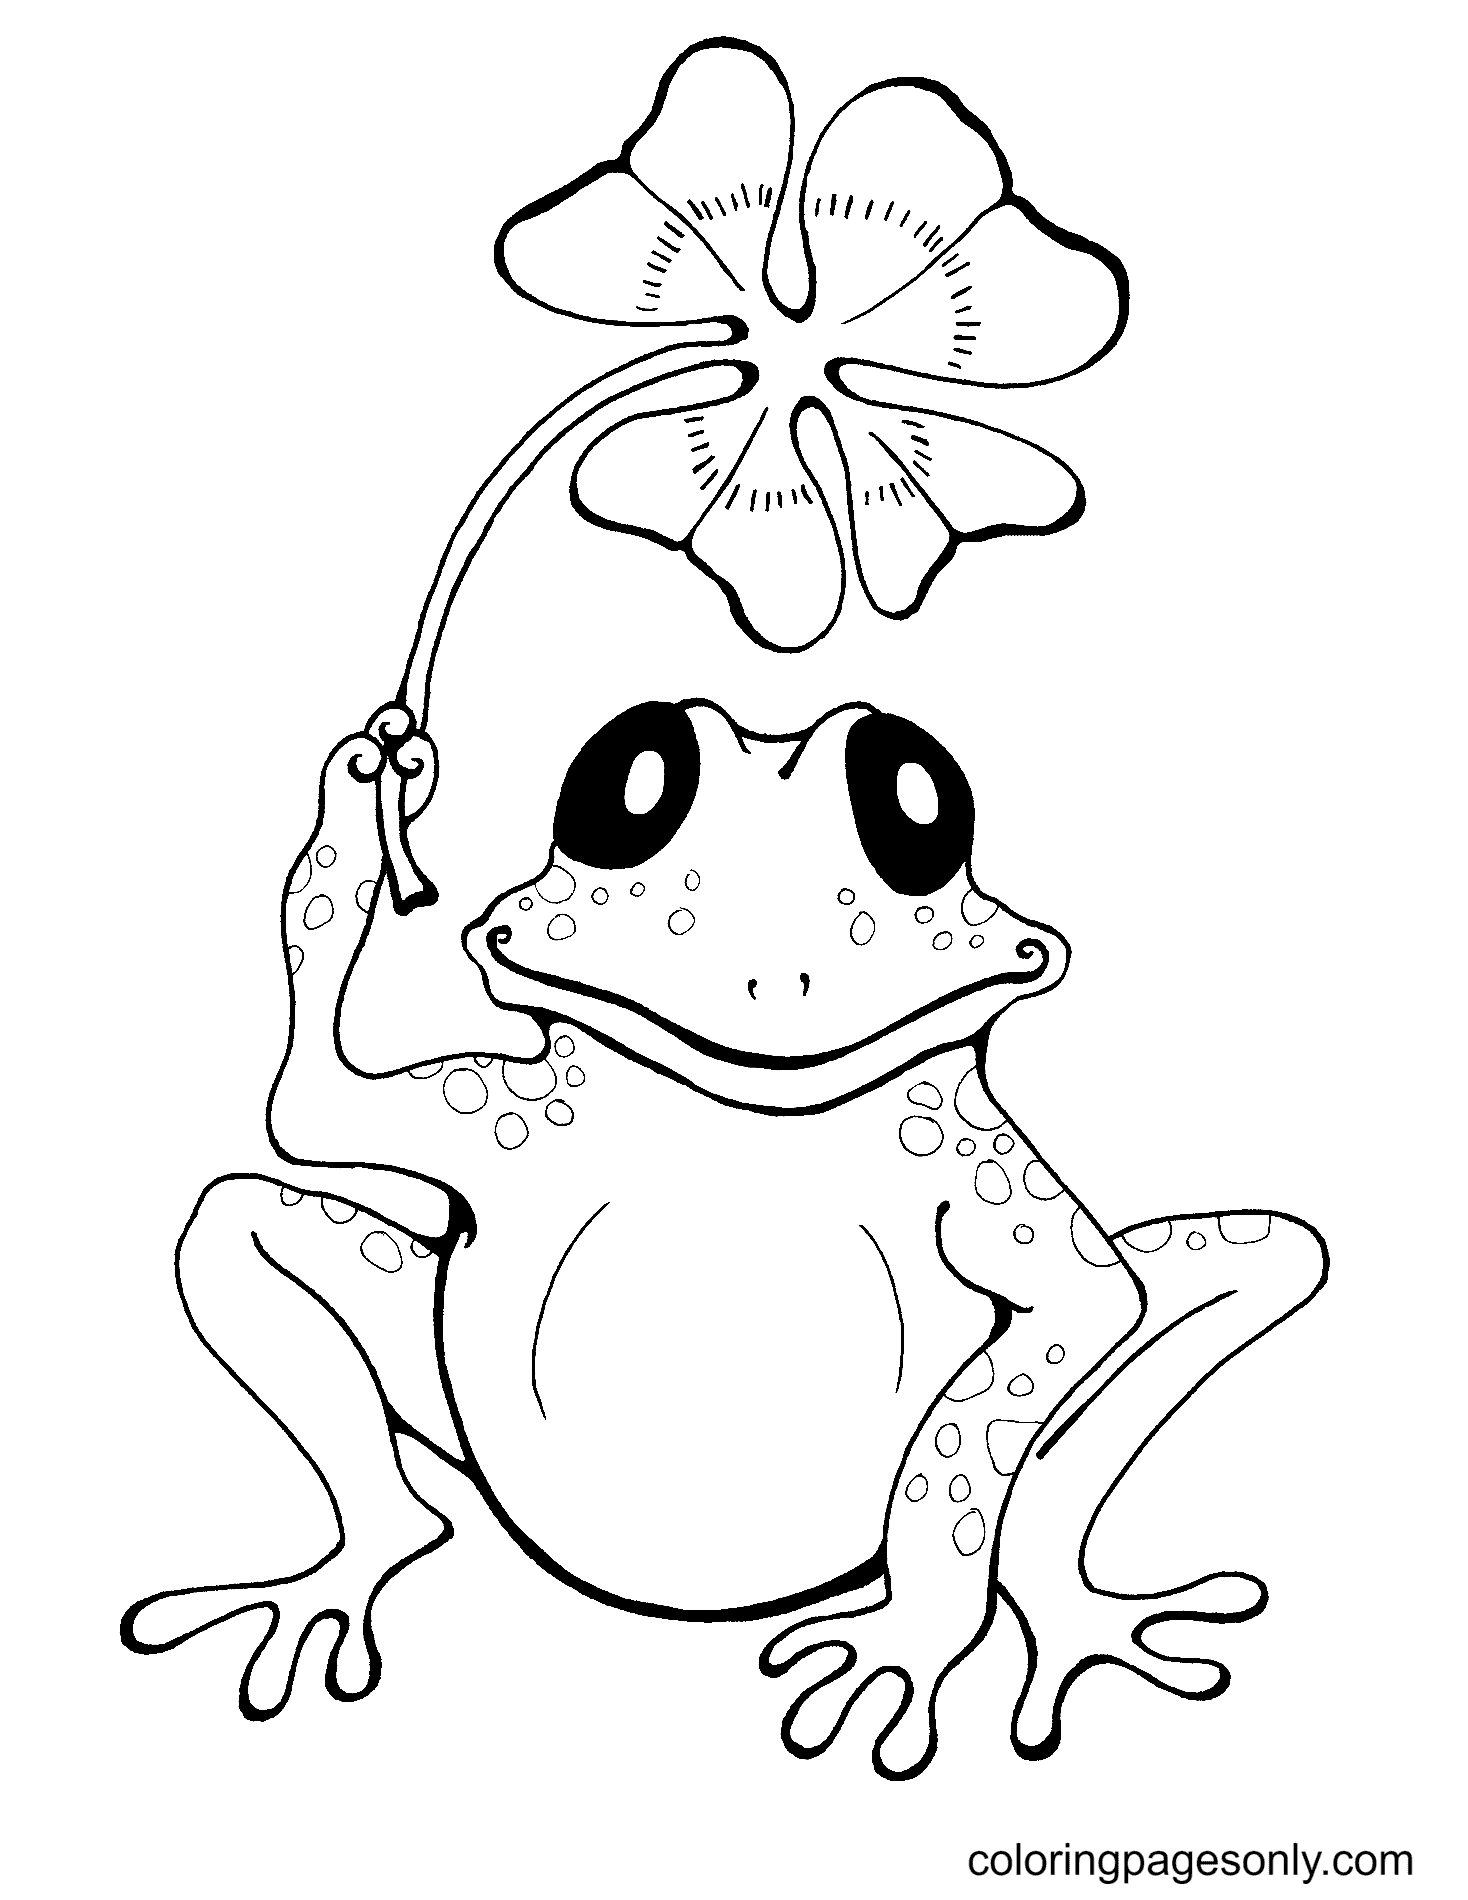 Frog Holding Lucky Grass Coloring Page